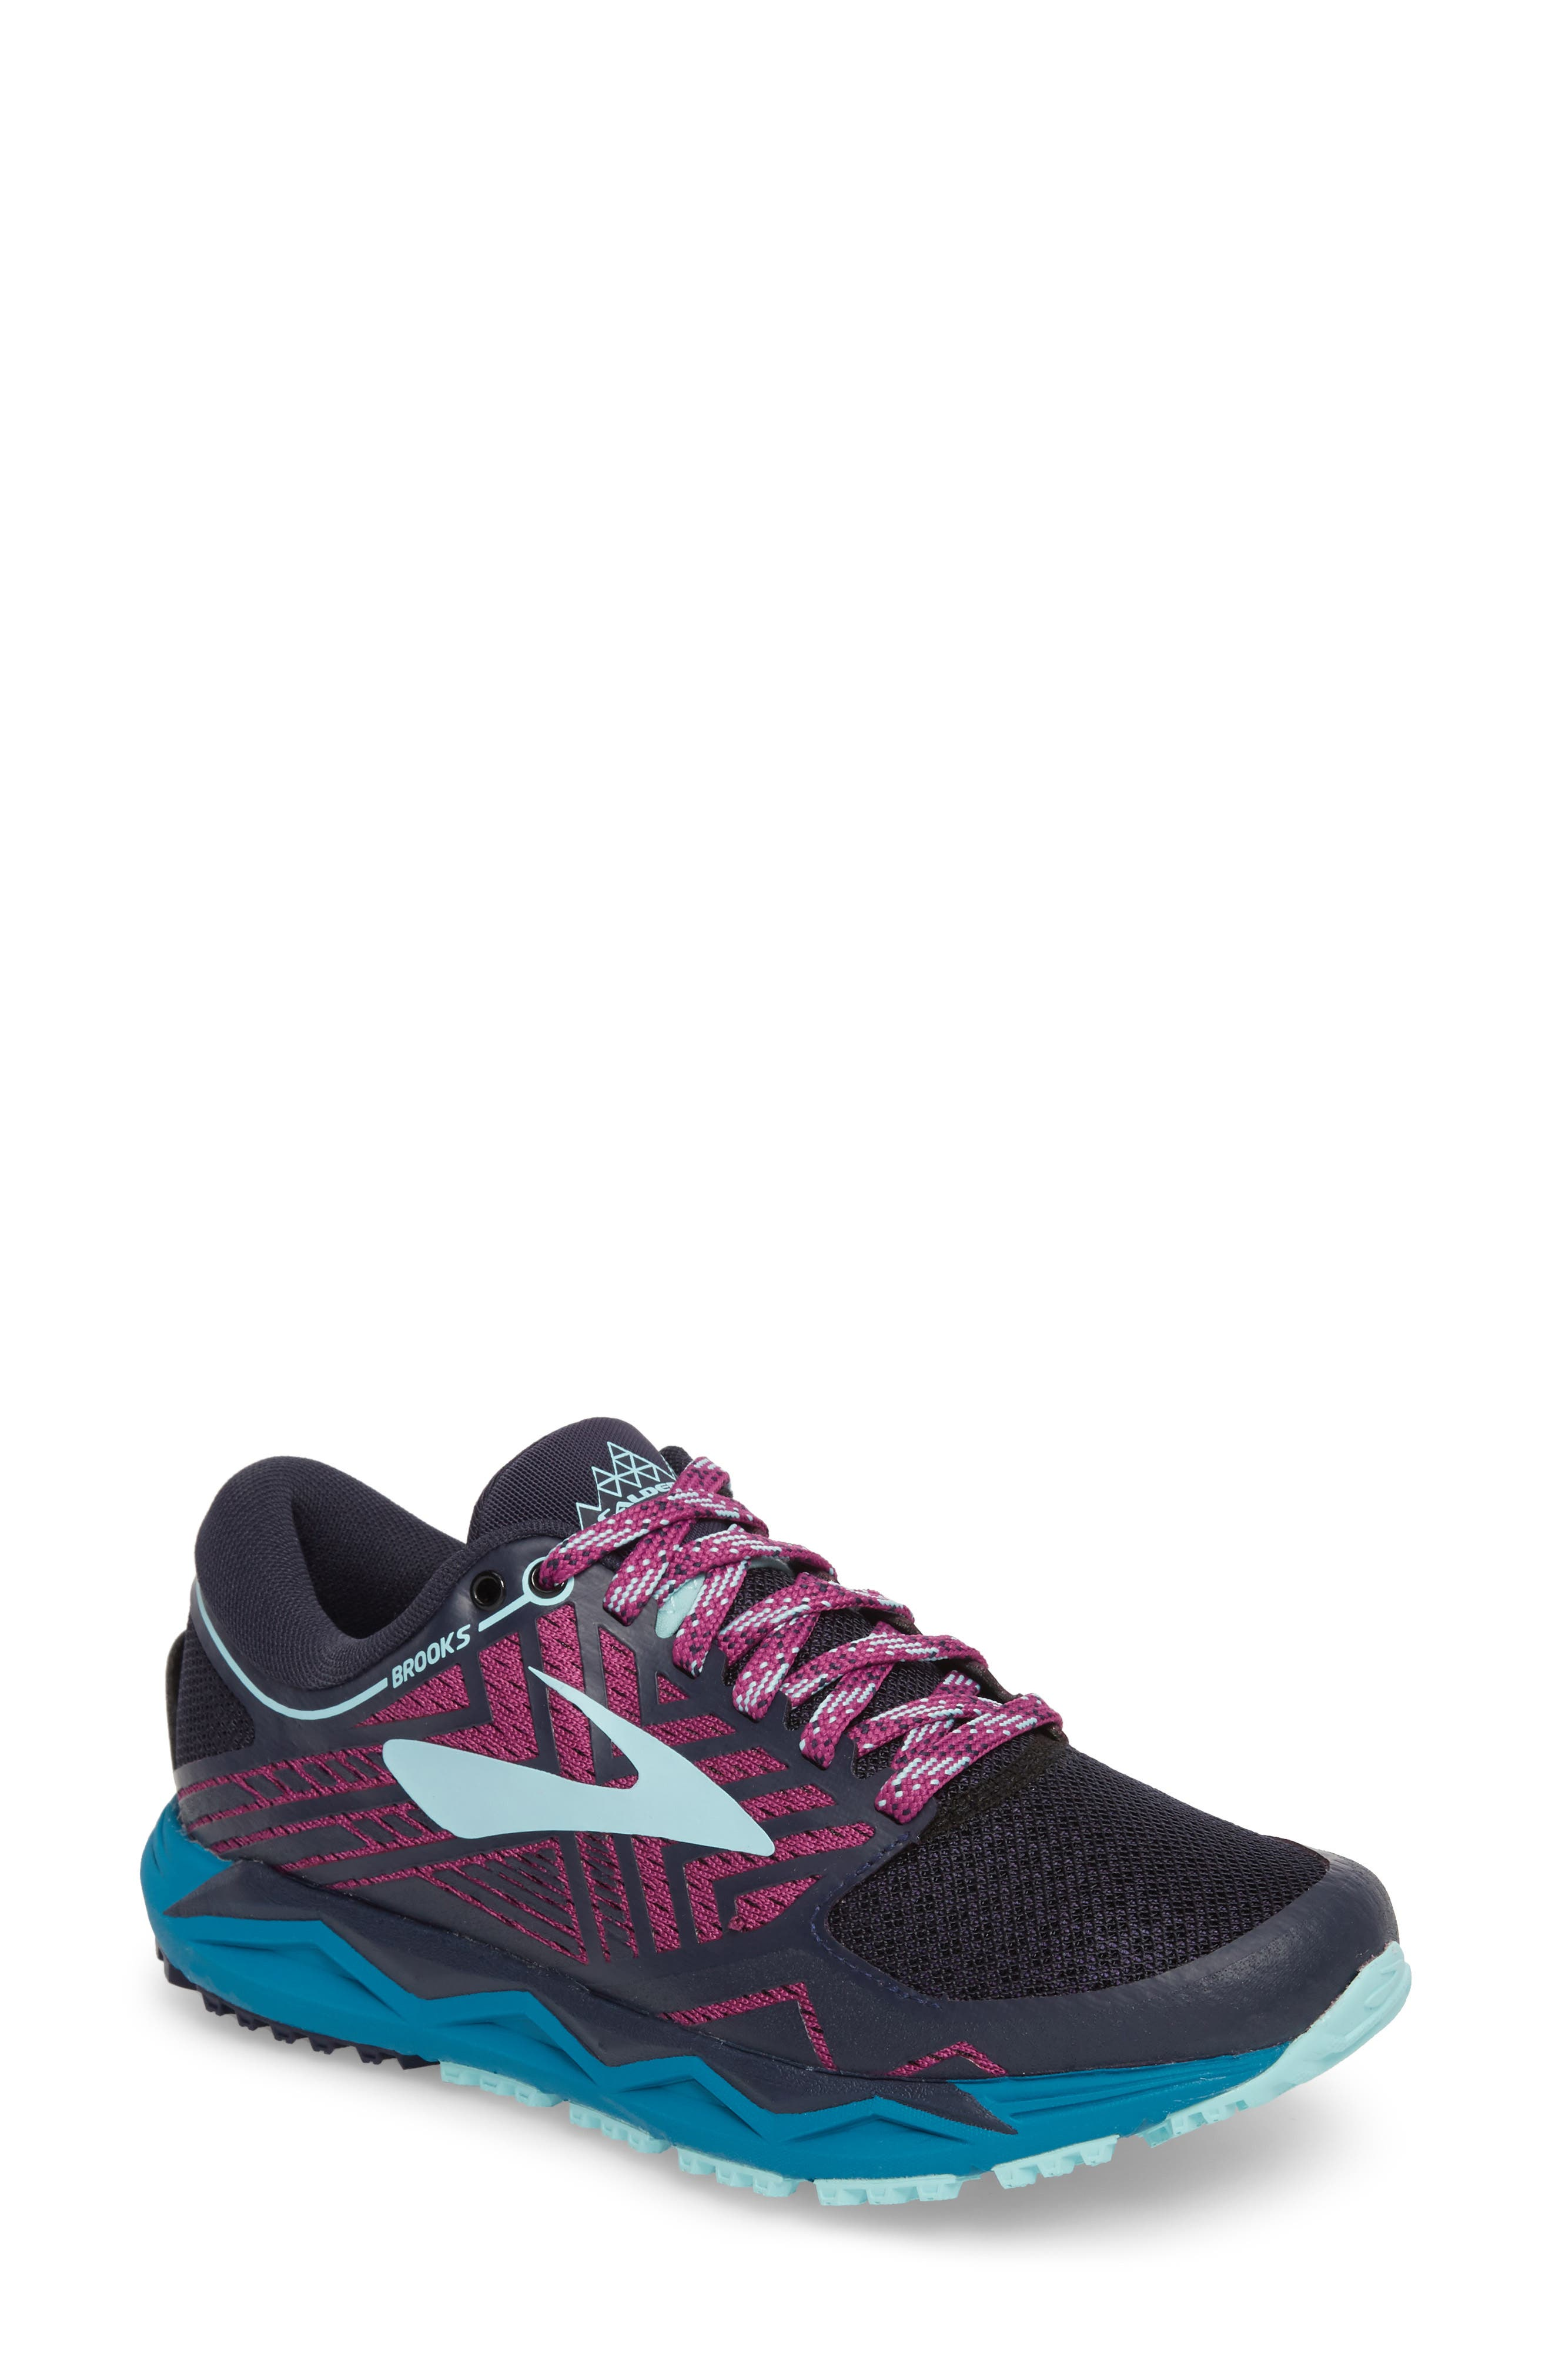 Caldera 2 Trail Running Shoe,                             Main thumbnail 1, color,                             NAVY/ PLUM/ ICE BLUE